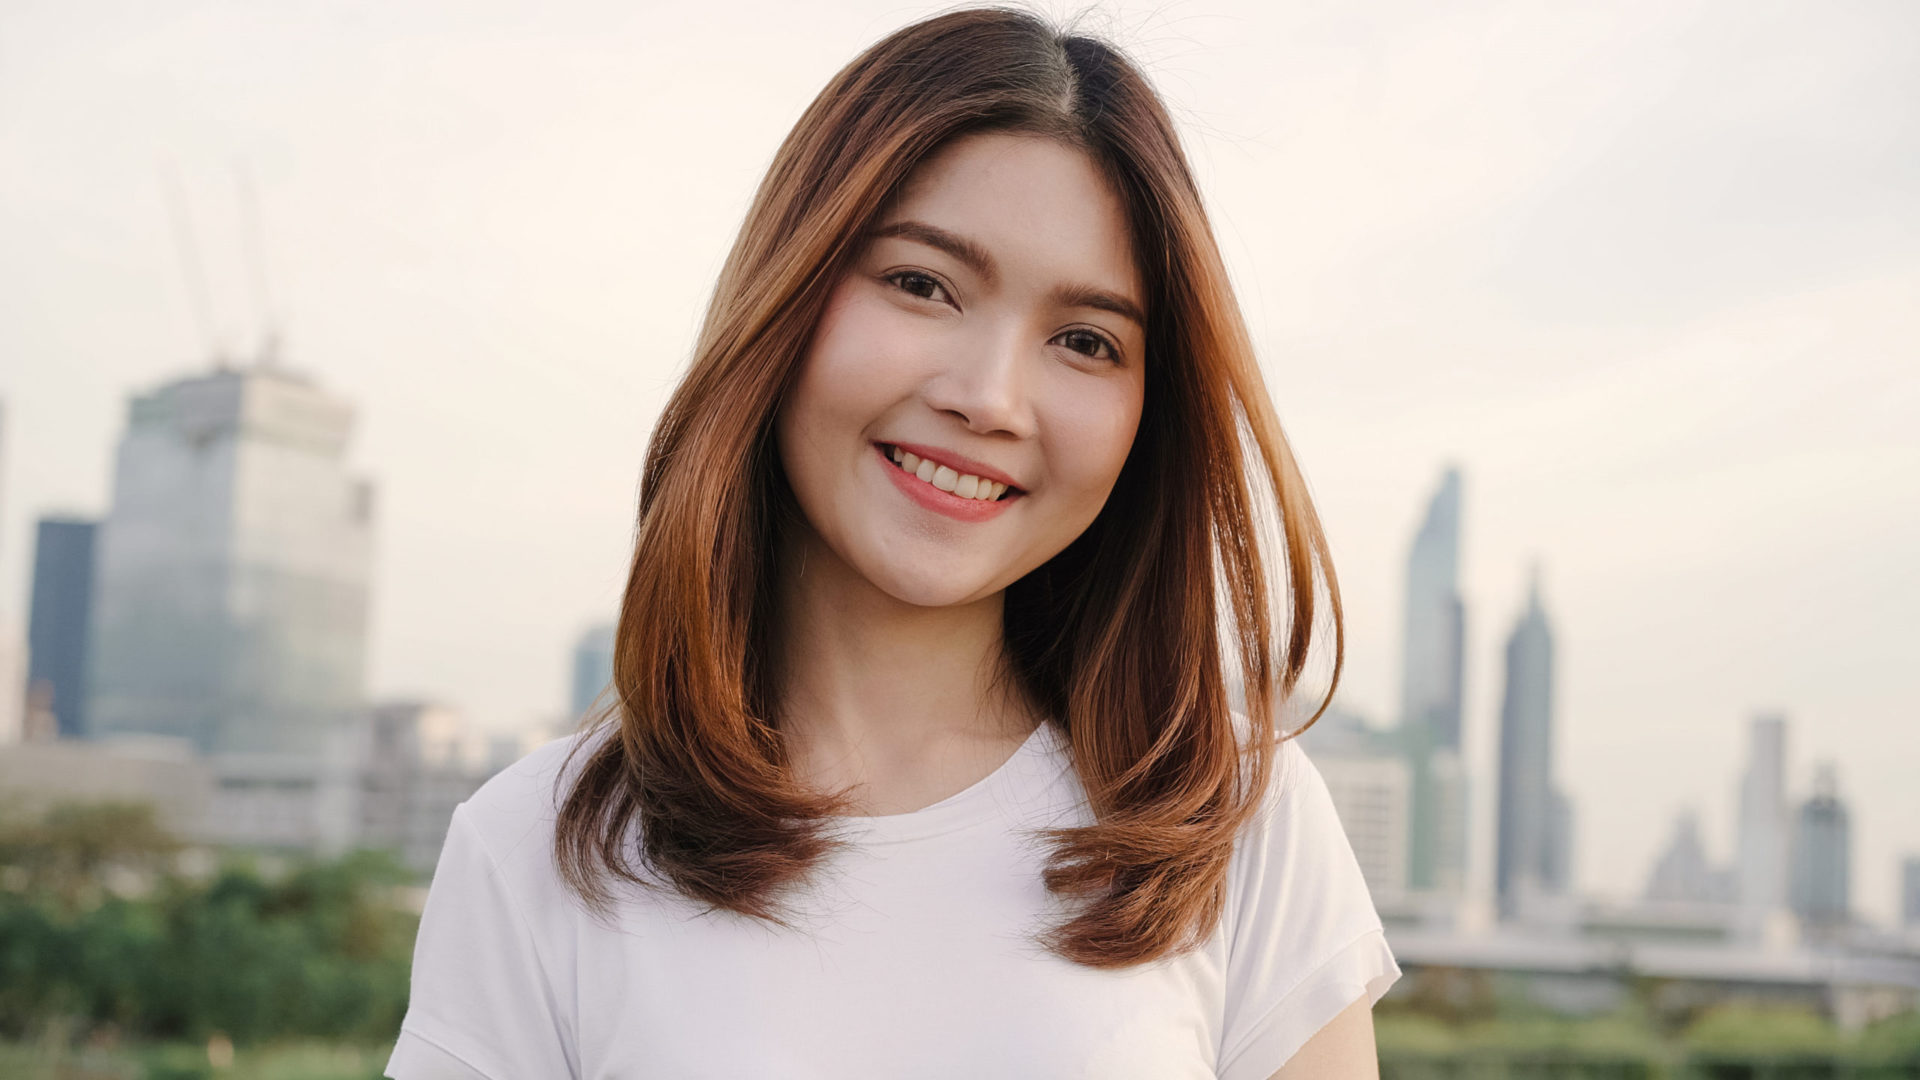 Cheerful beautiful young Asian woman feeling happy smiling to camera while traveling on the street at downtown city. Lifestyle backpack tourist travel holiday concept. Portrait looking at camera.